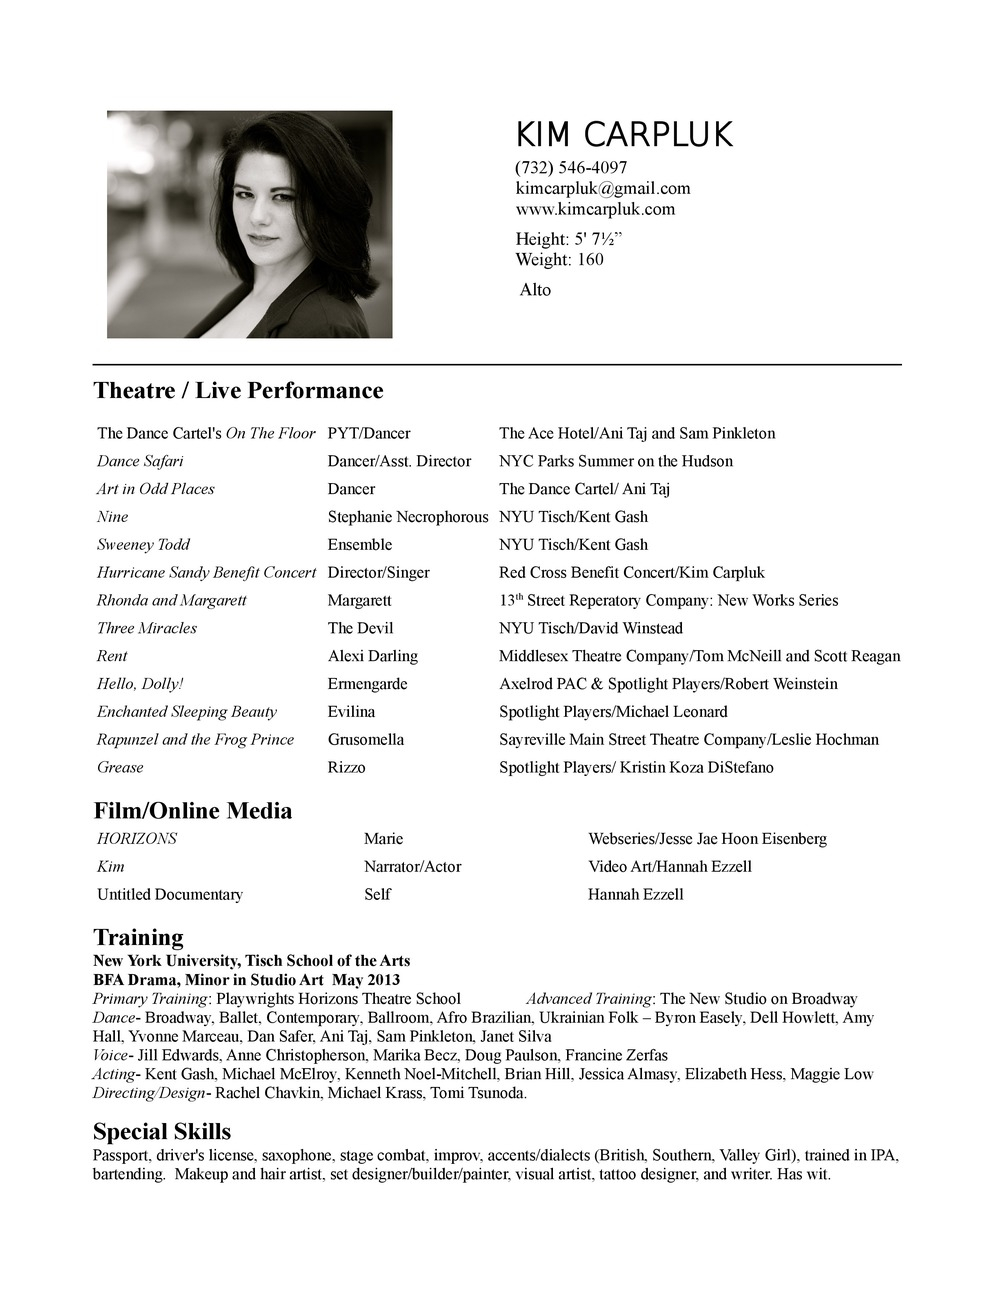 theatre resume kim carpluk